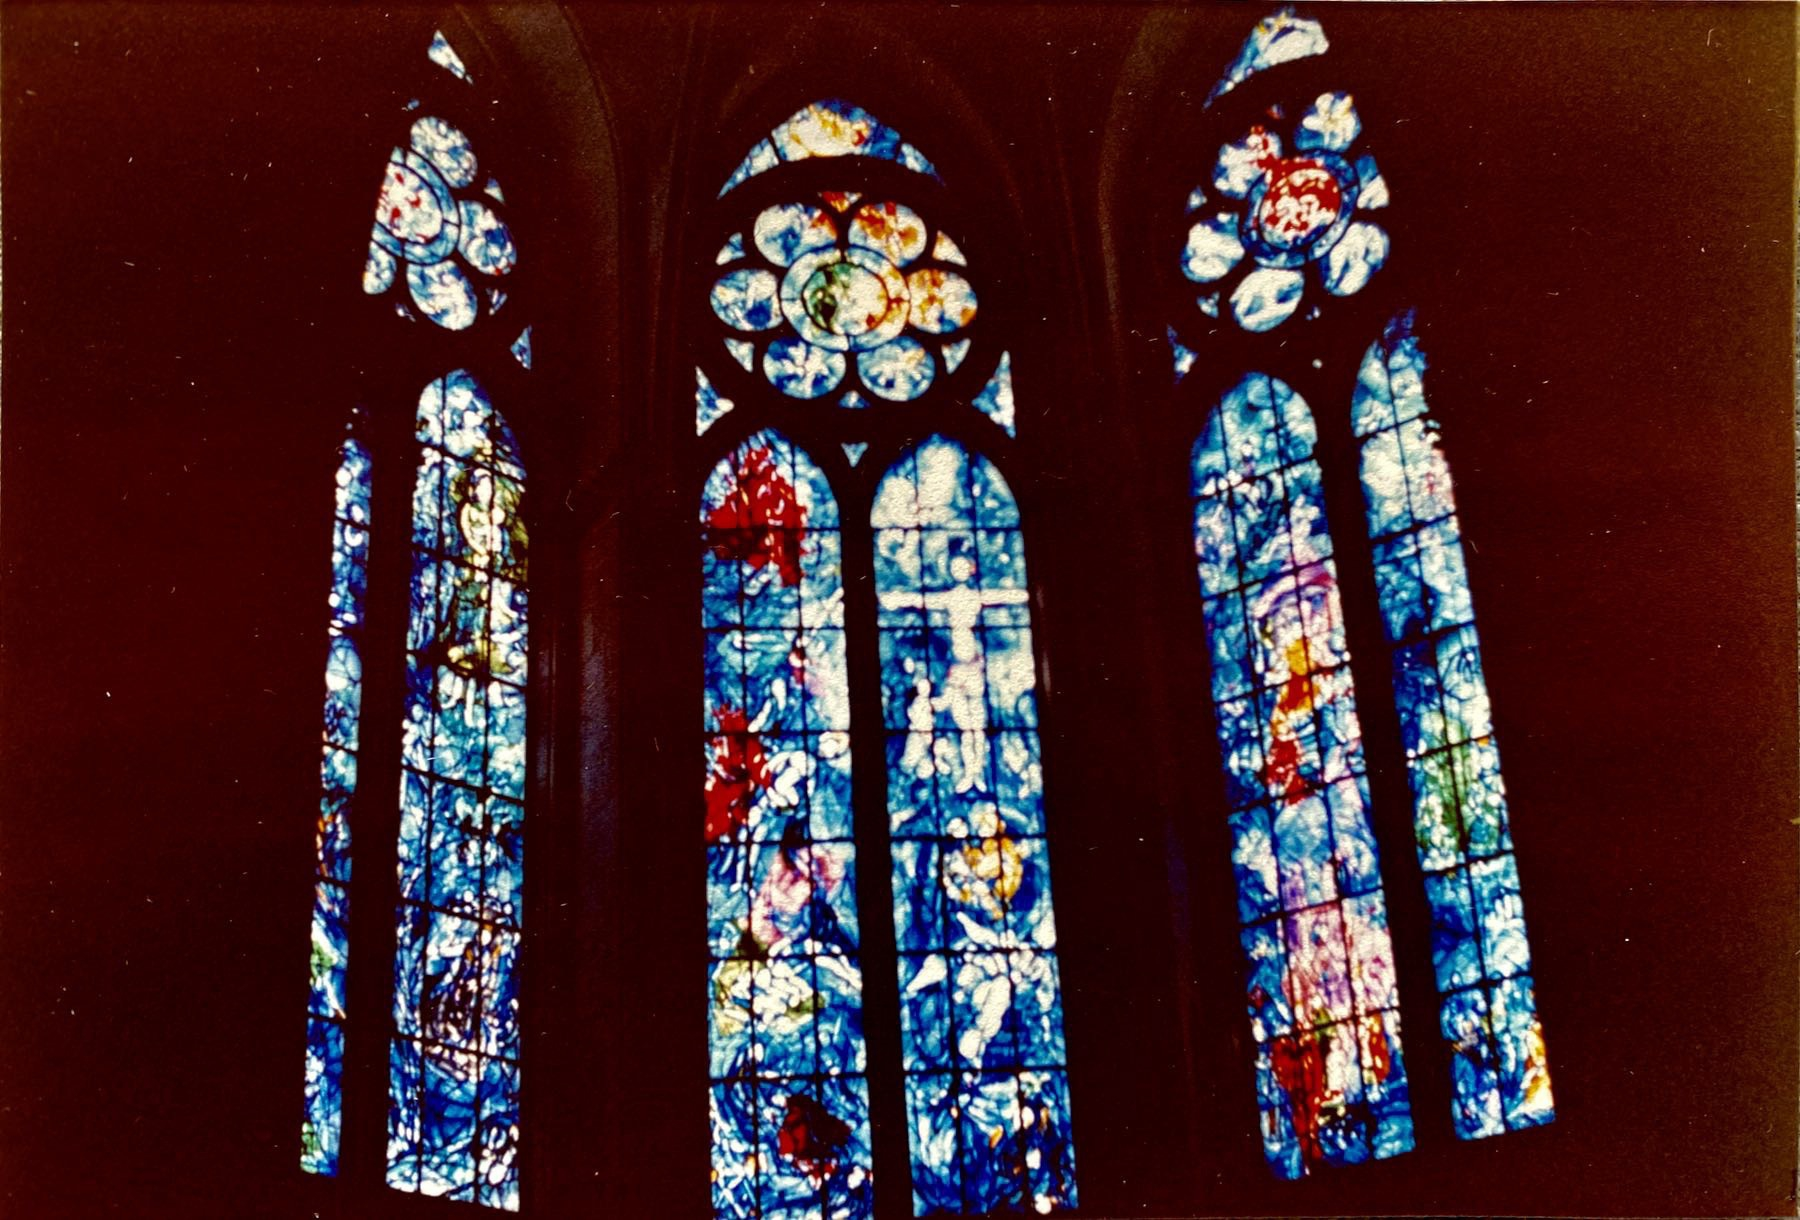 Cathedral windows in stained glass with a predominant blue colour.